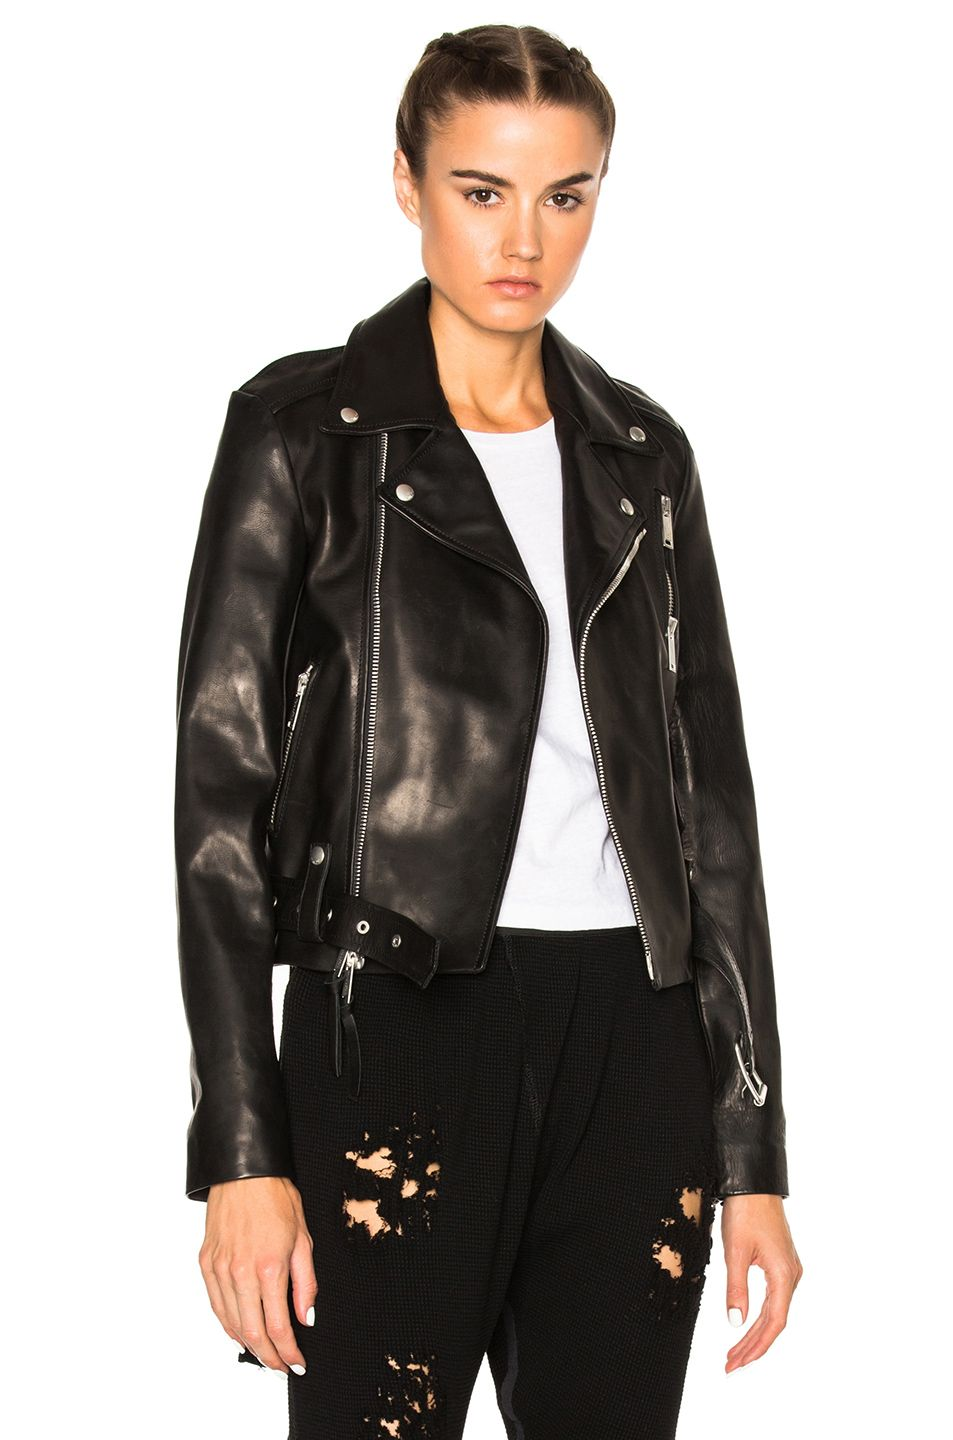 3fc42abaa7a UNRAVEL Leather Lace Up Biker Jacket.  unravel  cloth